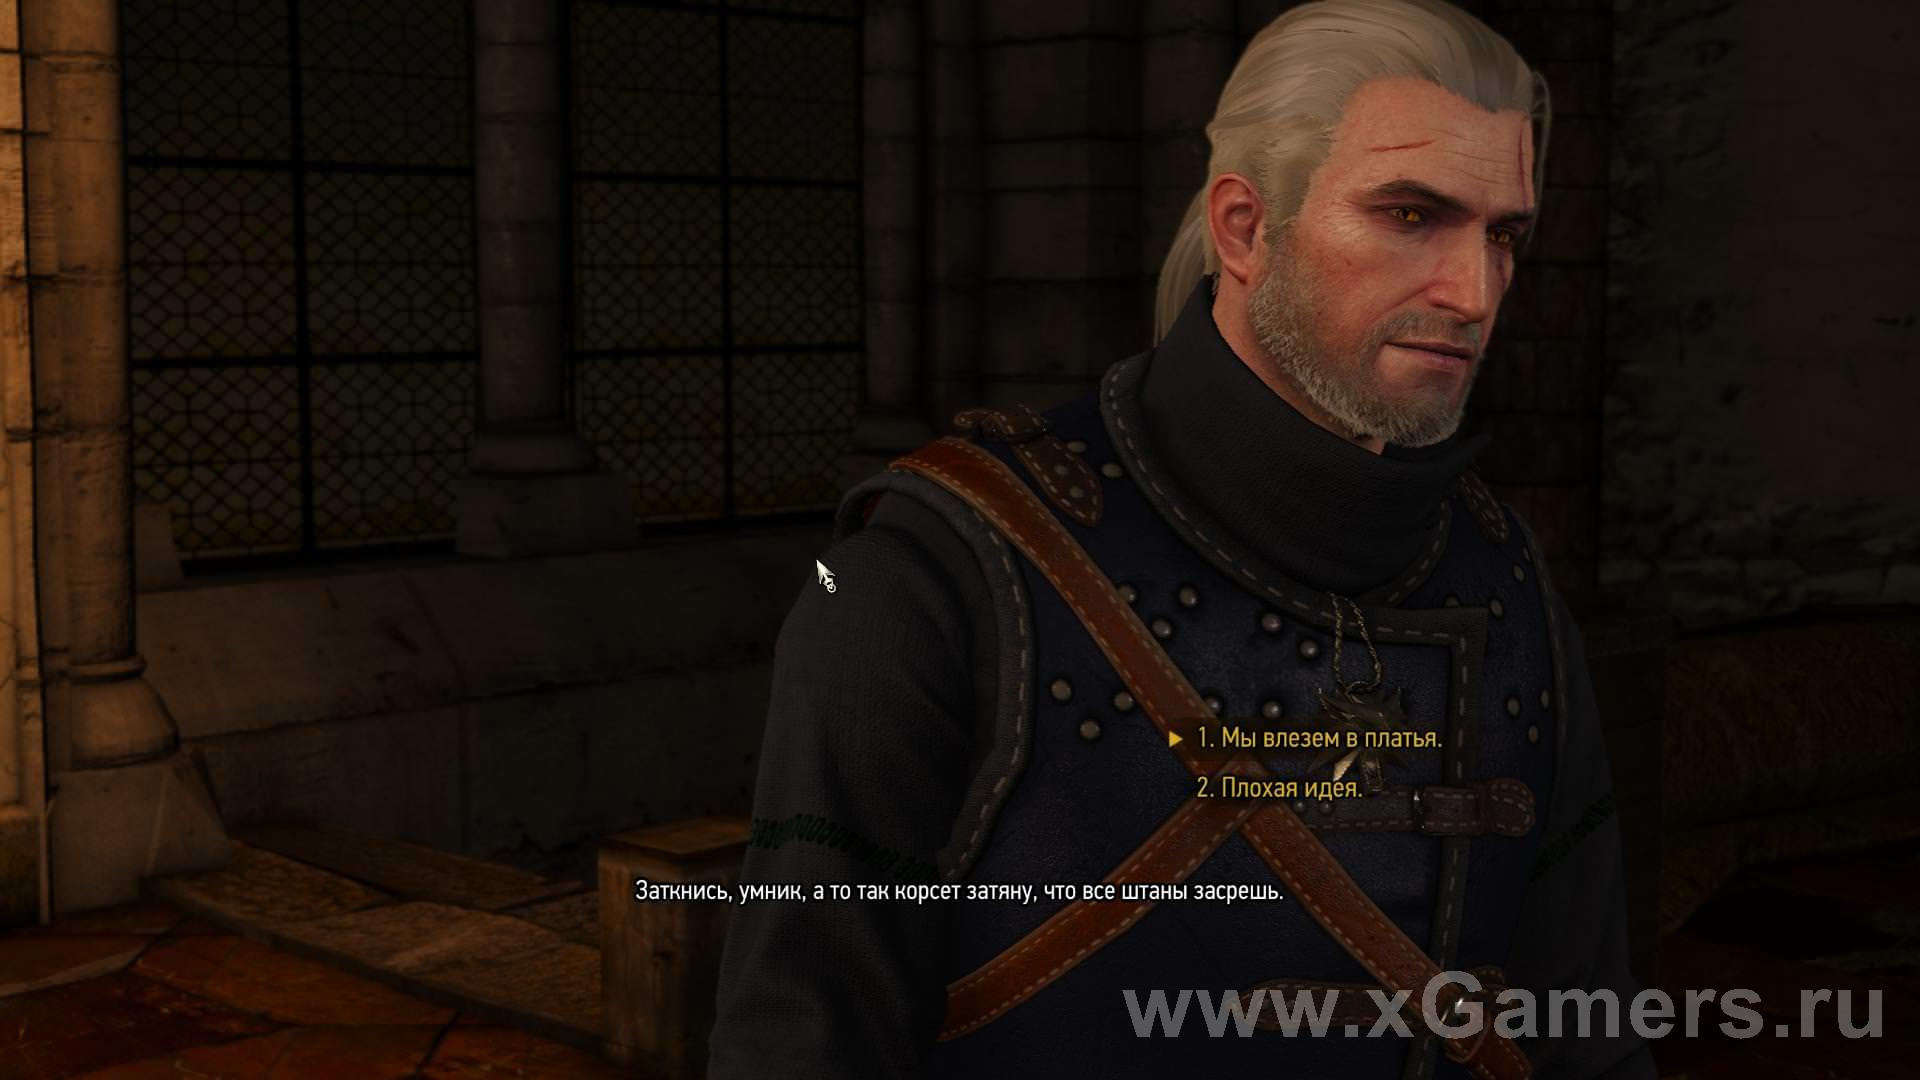 Three drunk men will immediately carry the witcher into the room with the megascope